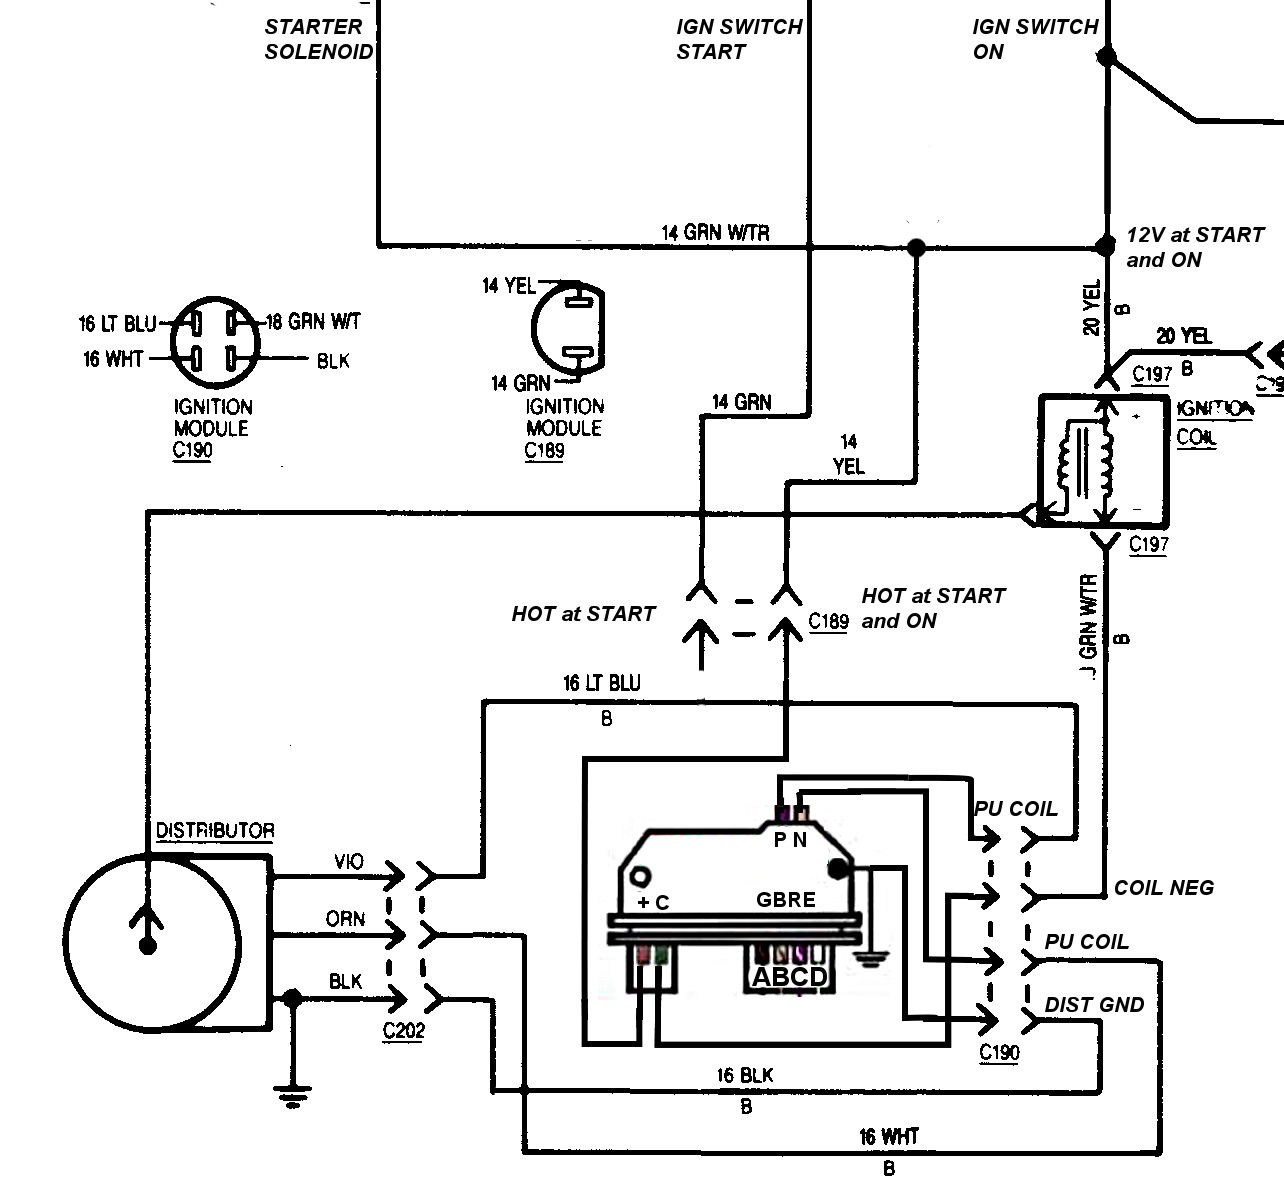 vw ignition module wiring diagram diy enthusiasts wiring diagrams u2022 rh broadwaycomputers us